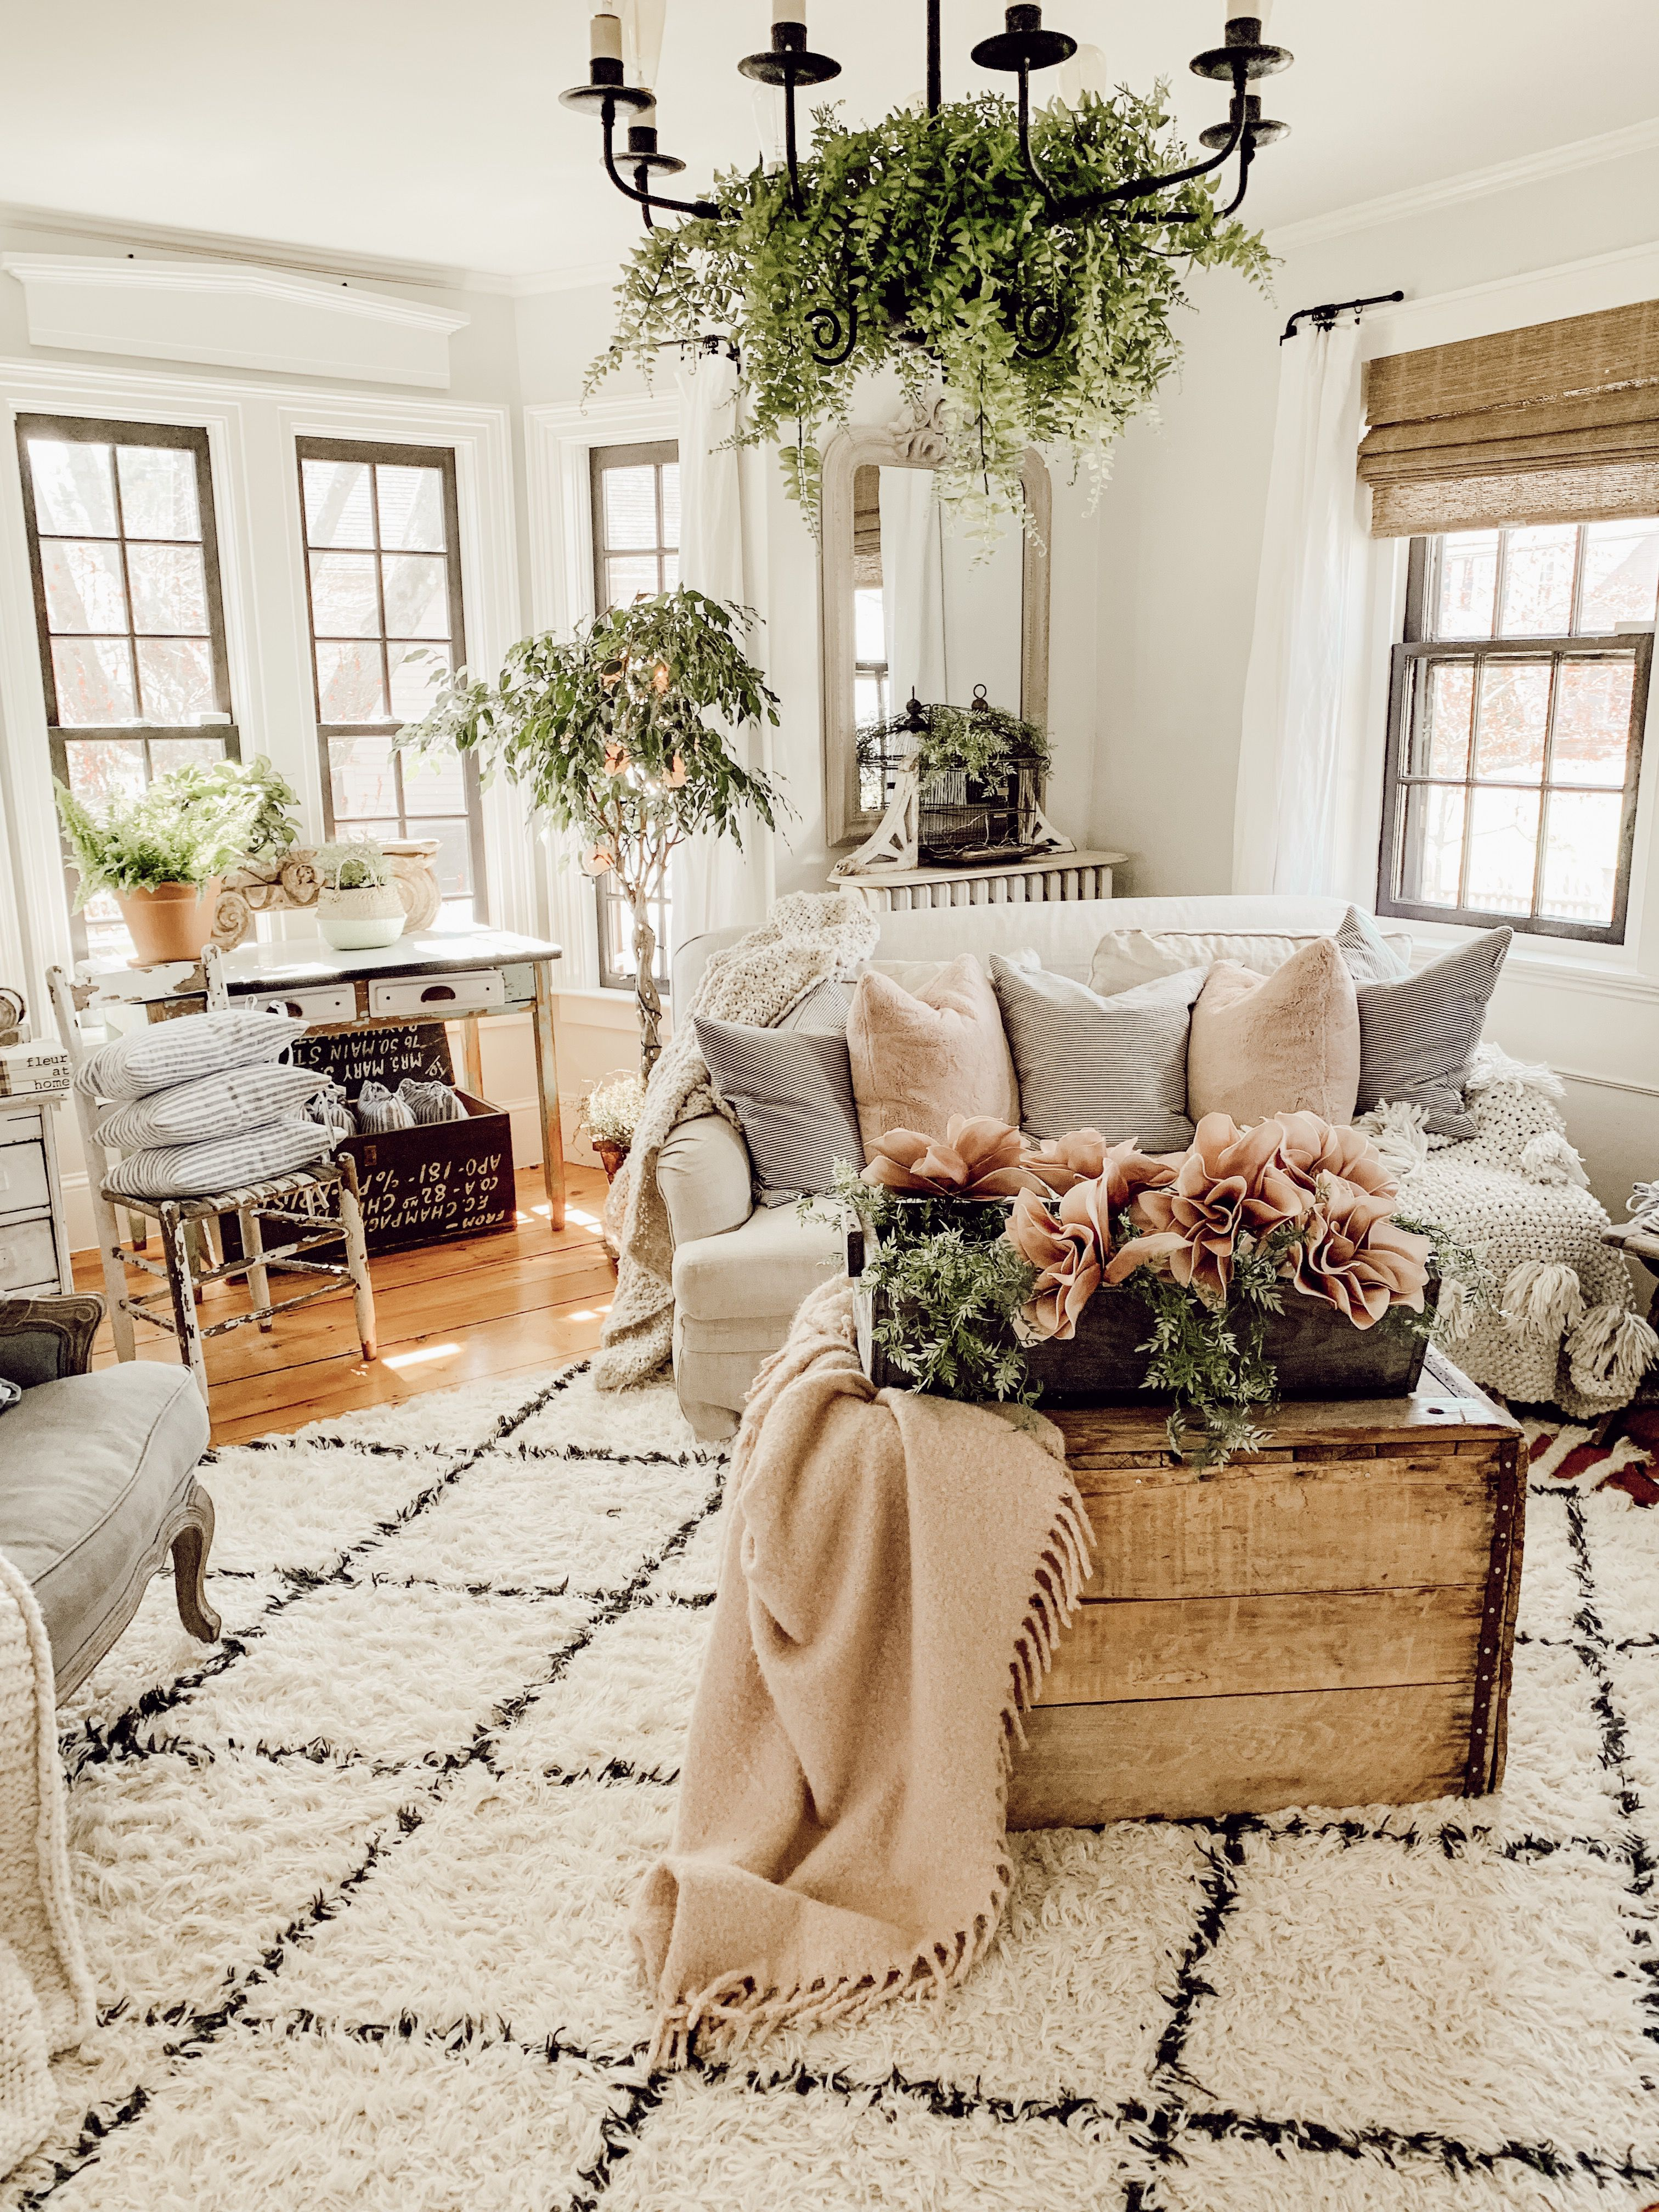 Vintage Living Room Ideas For Small Spaces: Cozy Rustic Farmhouse Living Room With Touches Of Pink